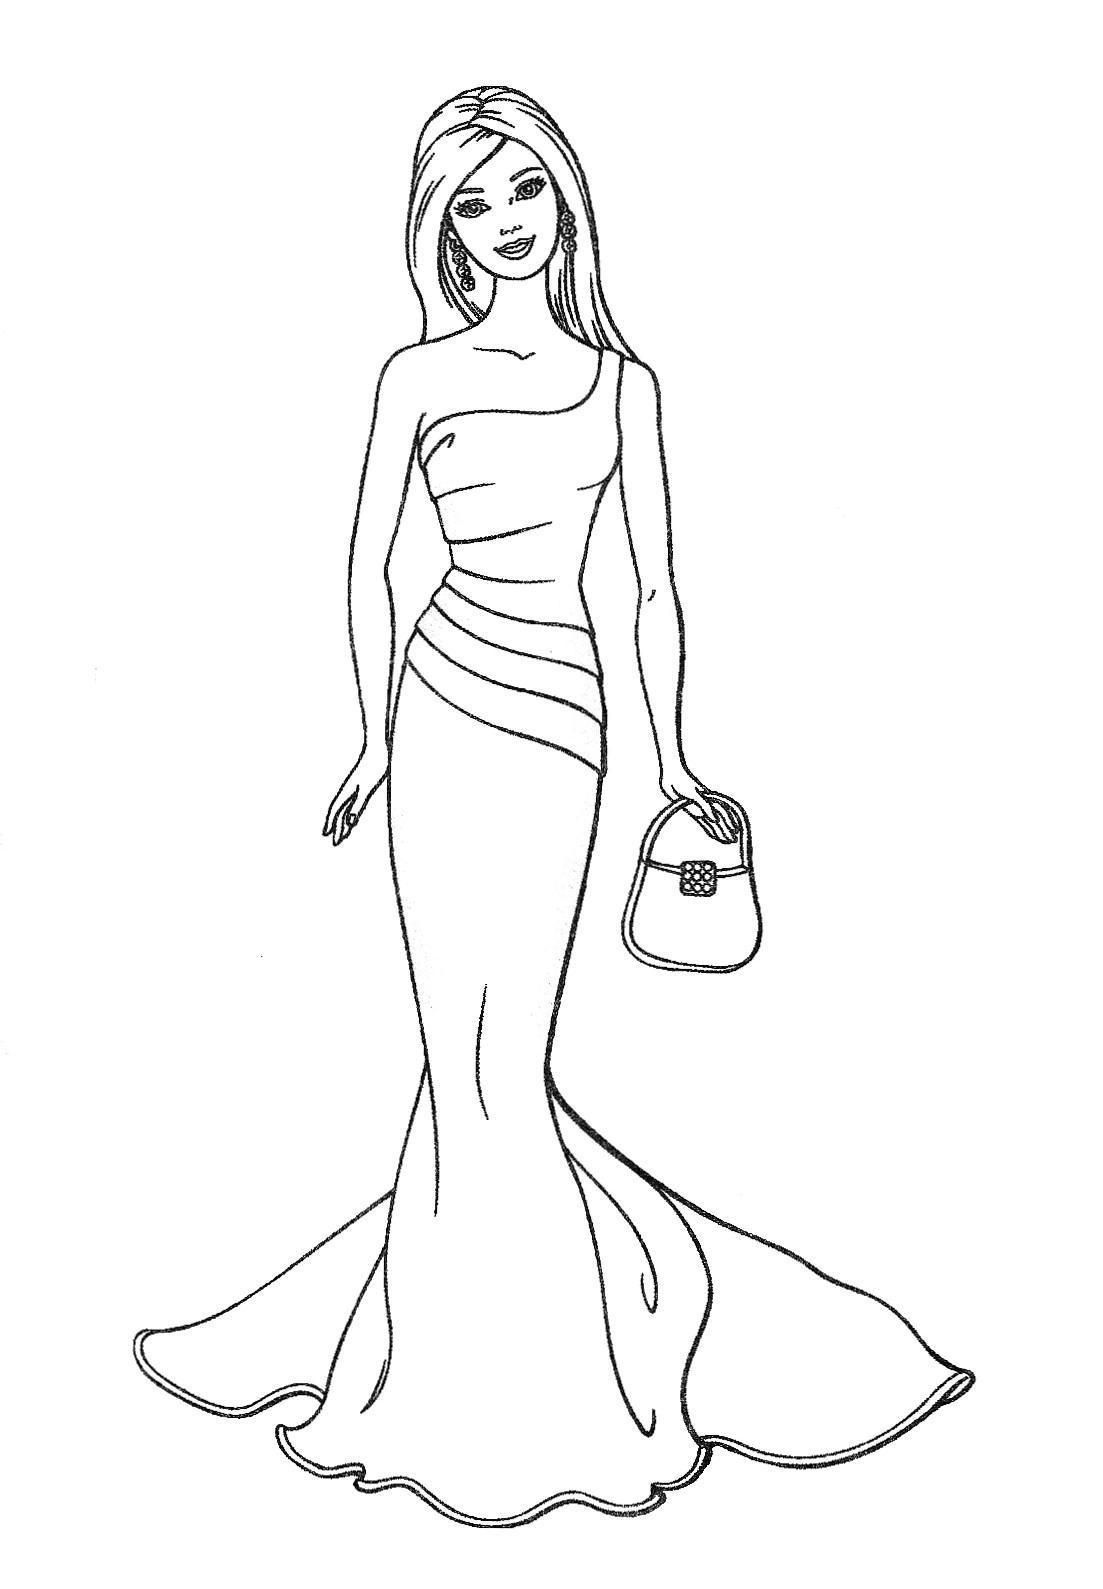 FREE Printable BARBIE COLORING PAGES ACTIVITY SHEETS PAPER CRAFTS And Party INVITATIONS For Barbie